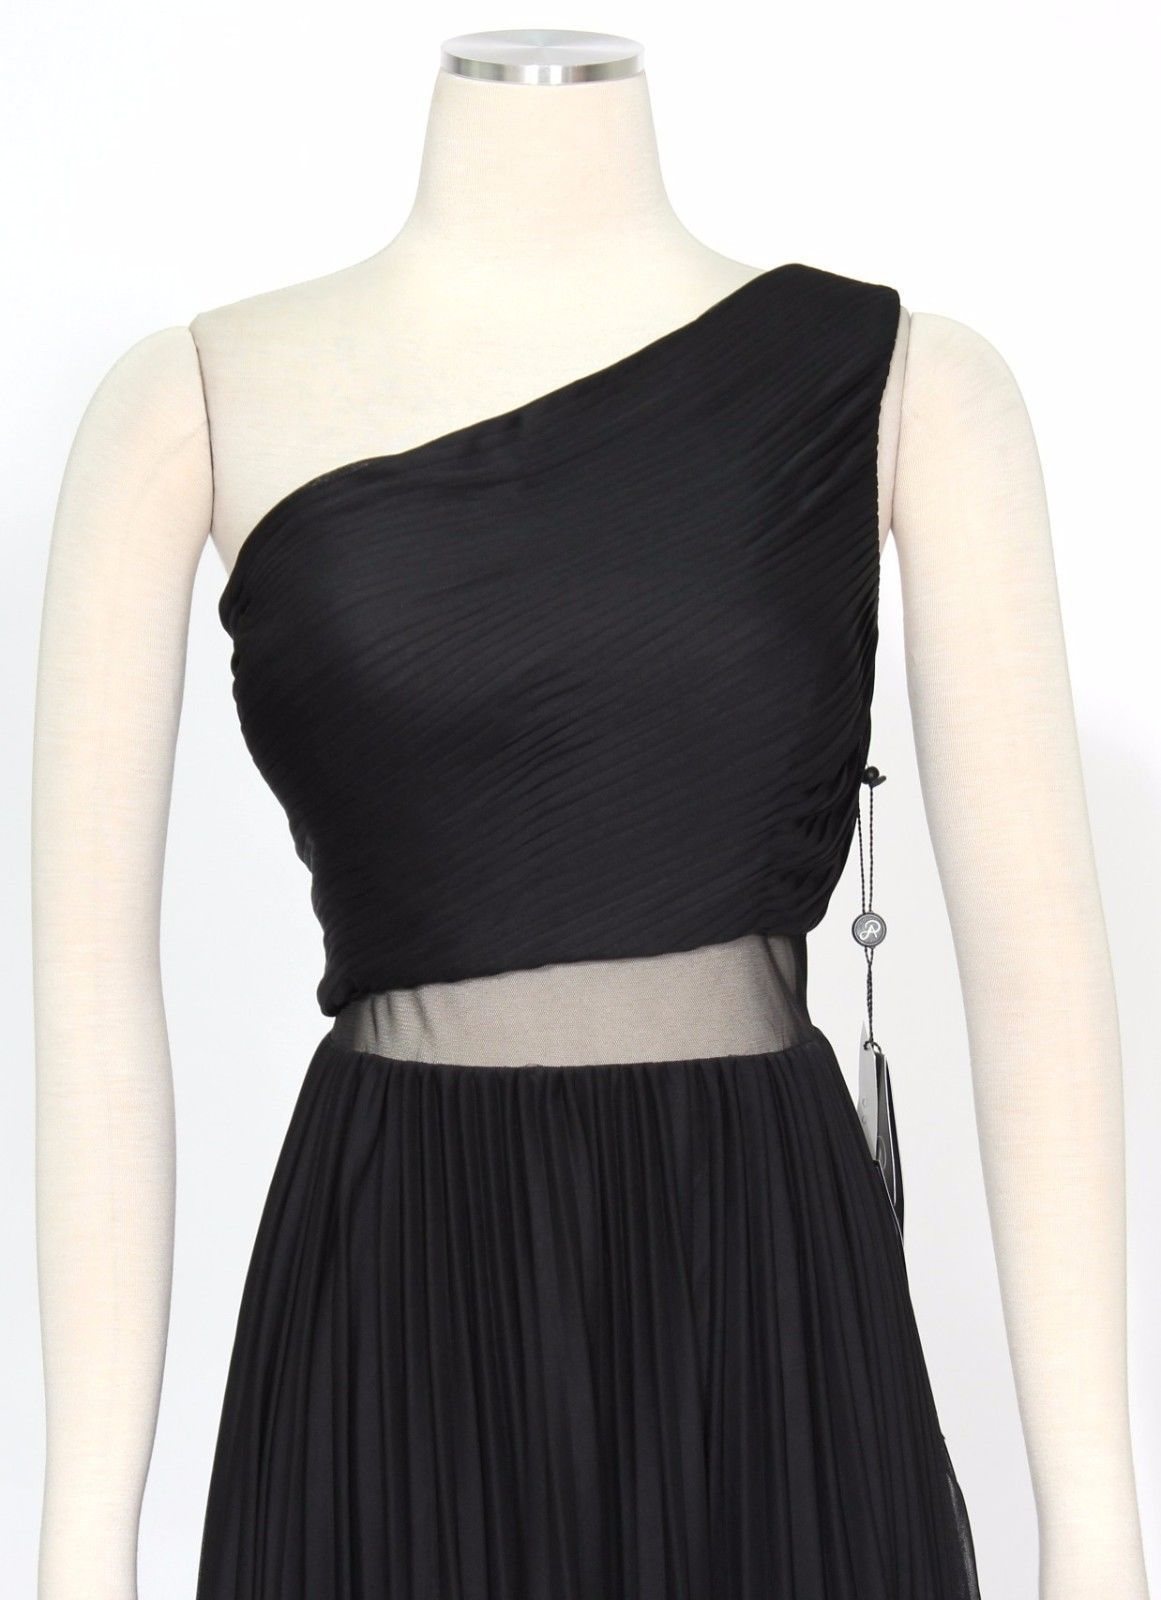 Adrianna Papell Womens Black Chiffon Pleated Party Dress 4